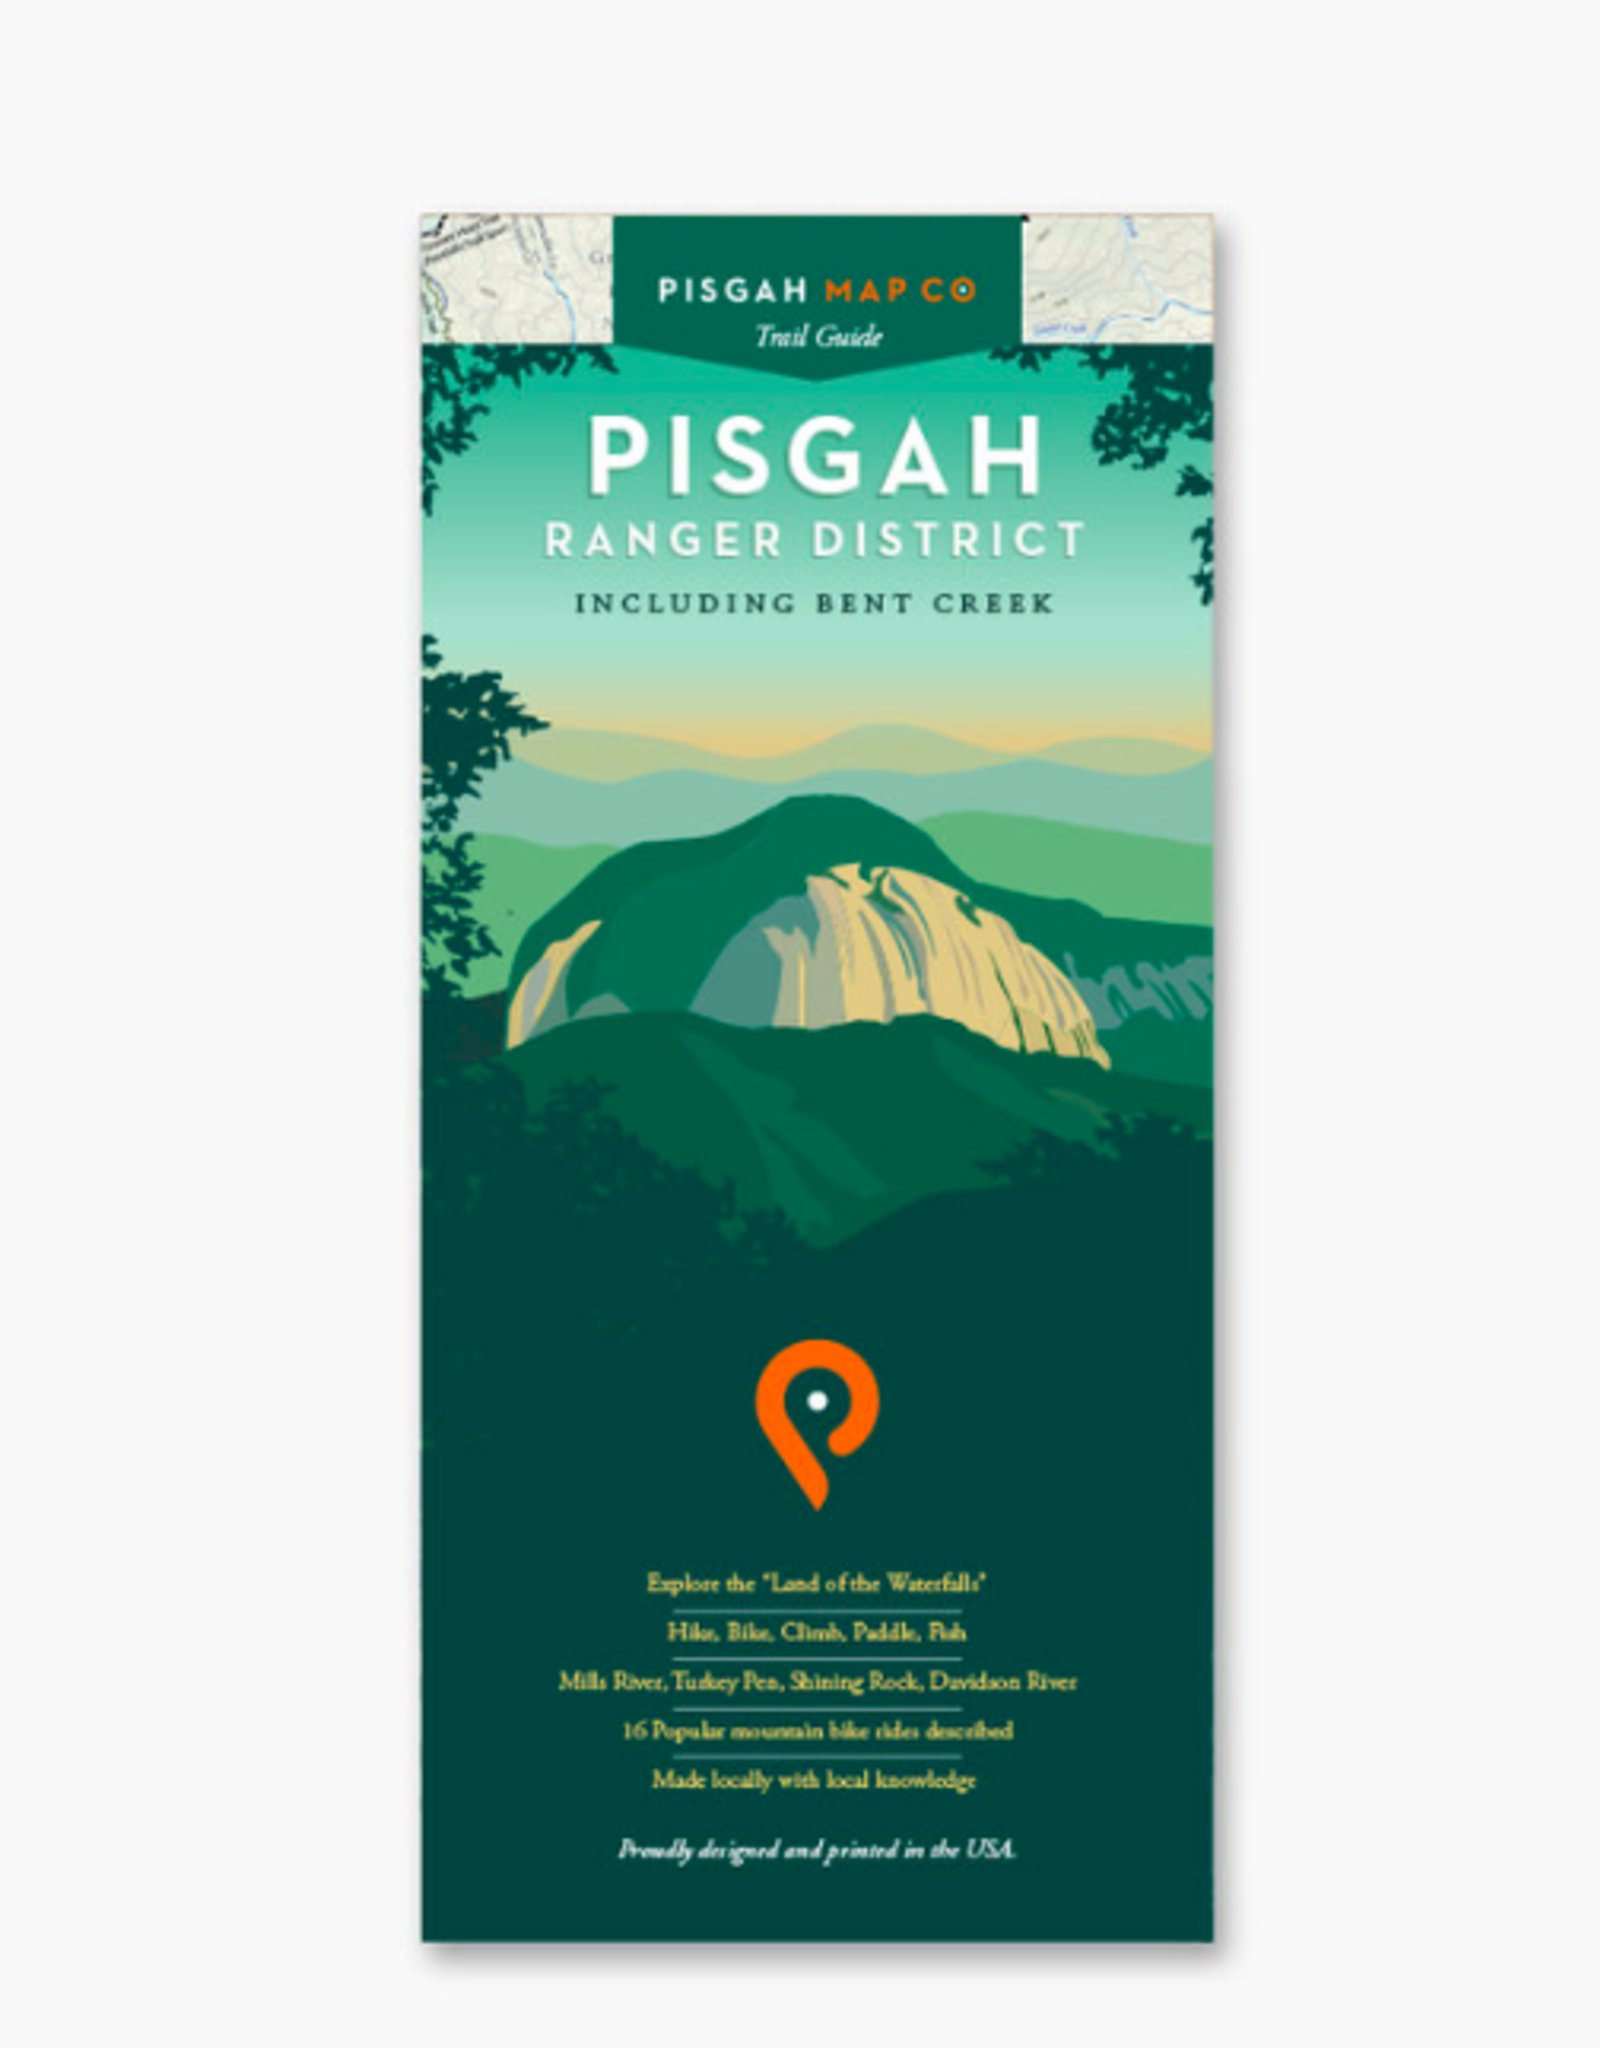 WNC Trail Guide Pisgah Ranger District Map